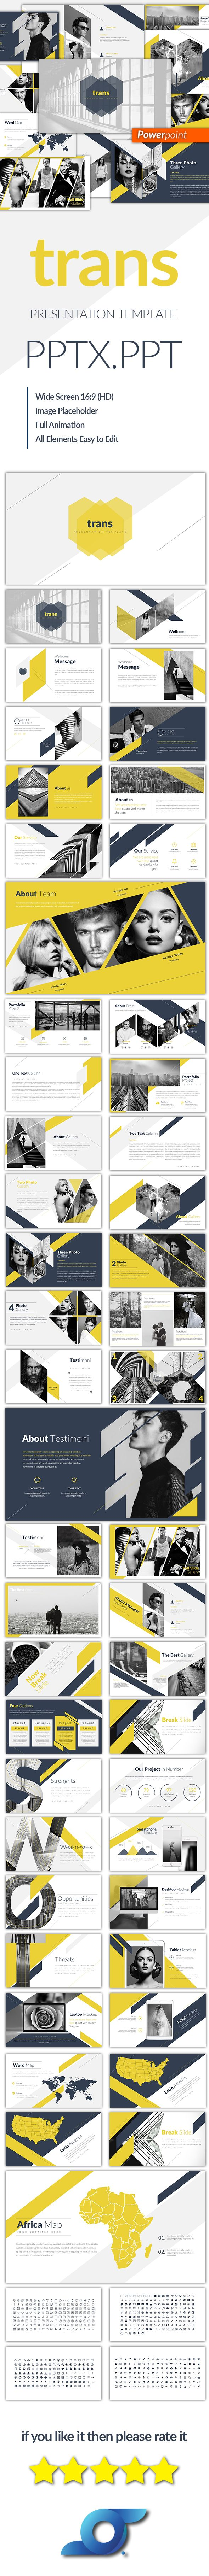 Trans Creative Powerpoint Templates - Abstract #PowerPoint Templates